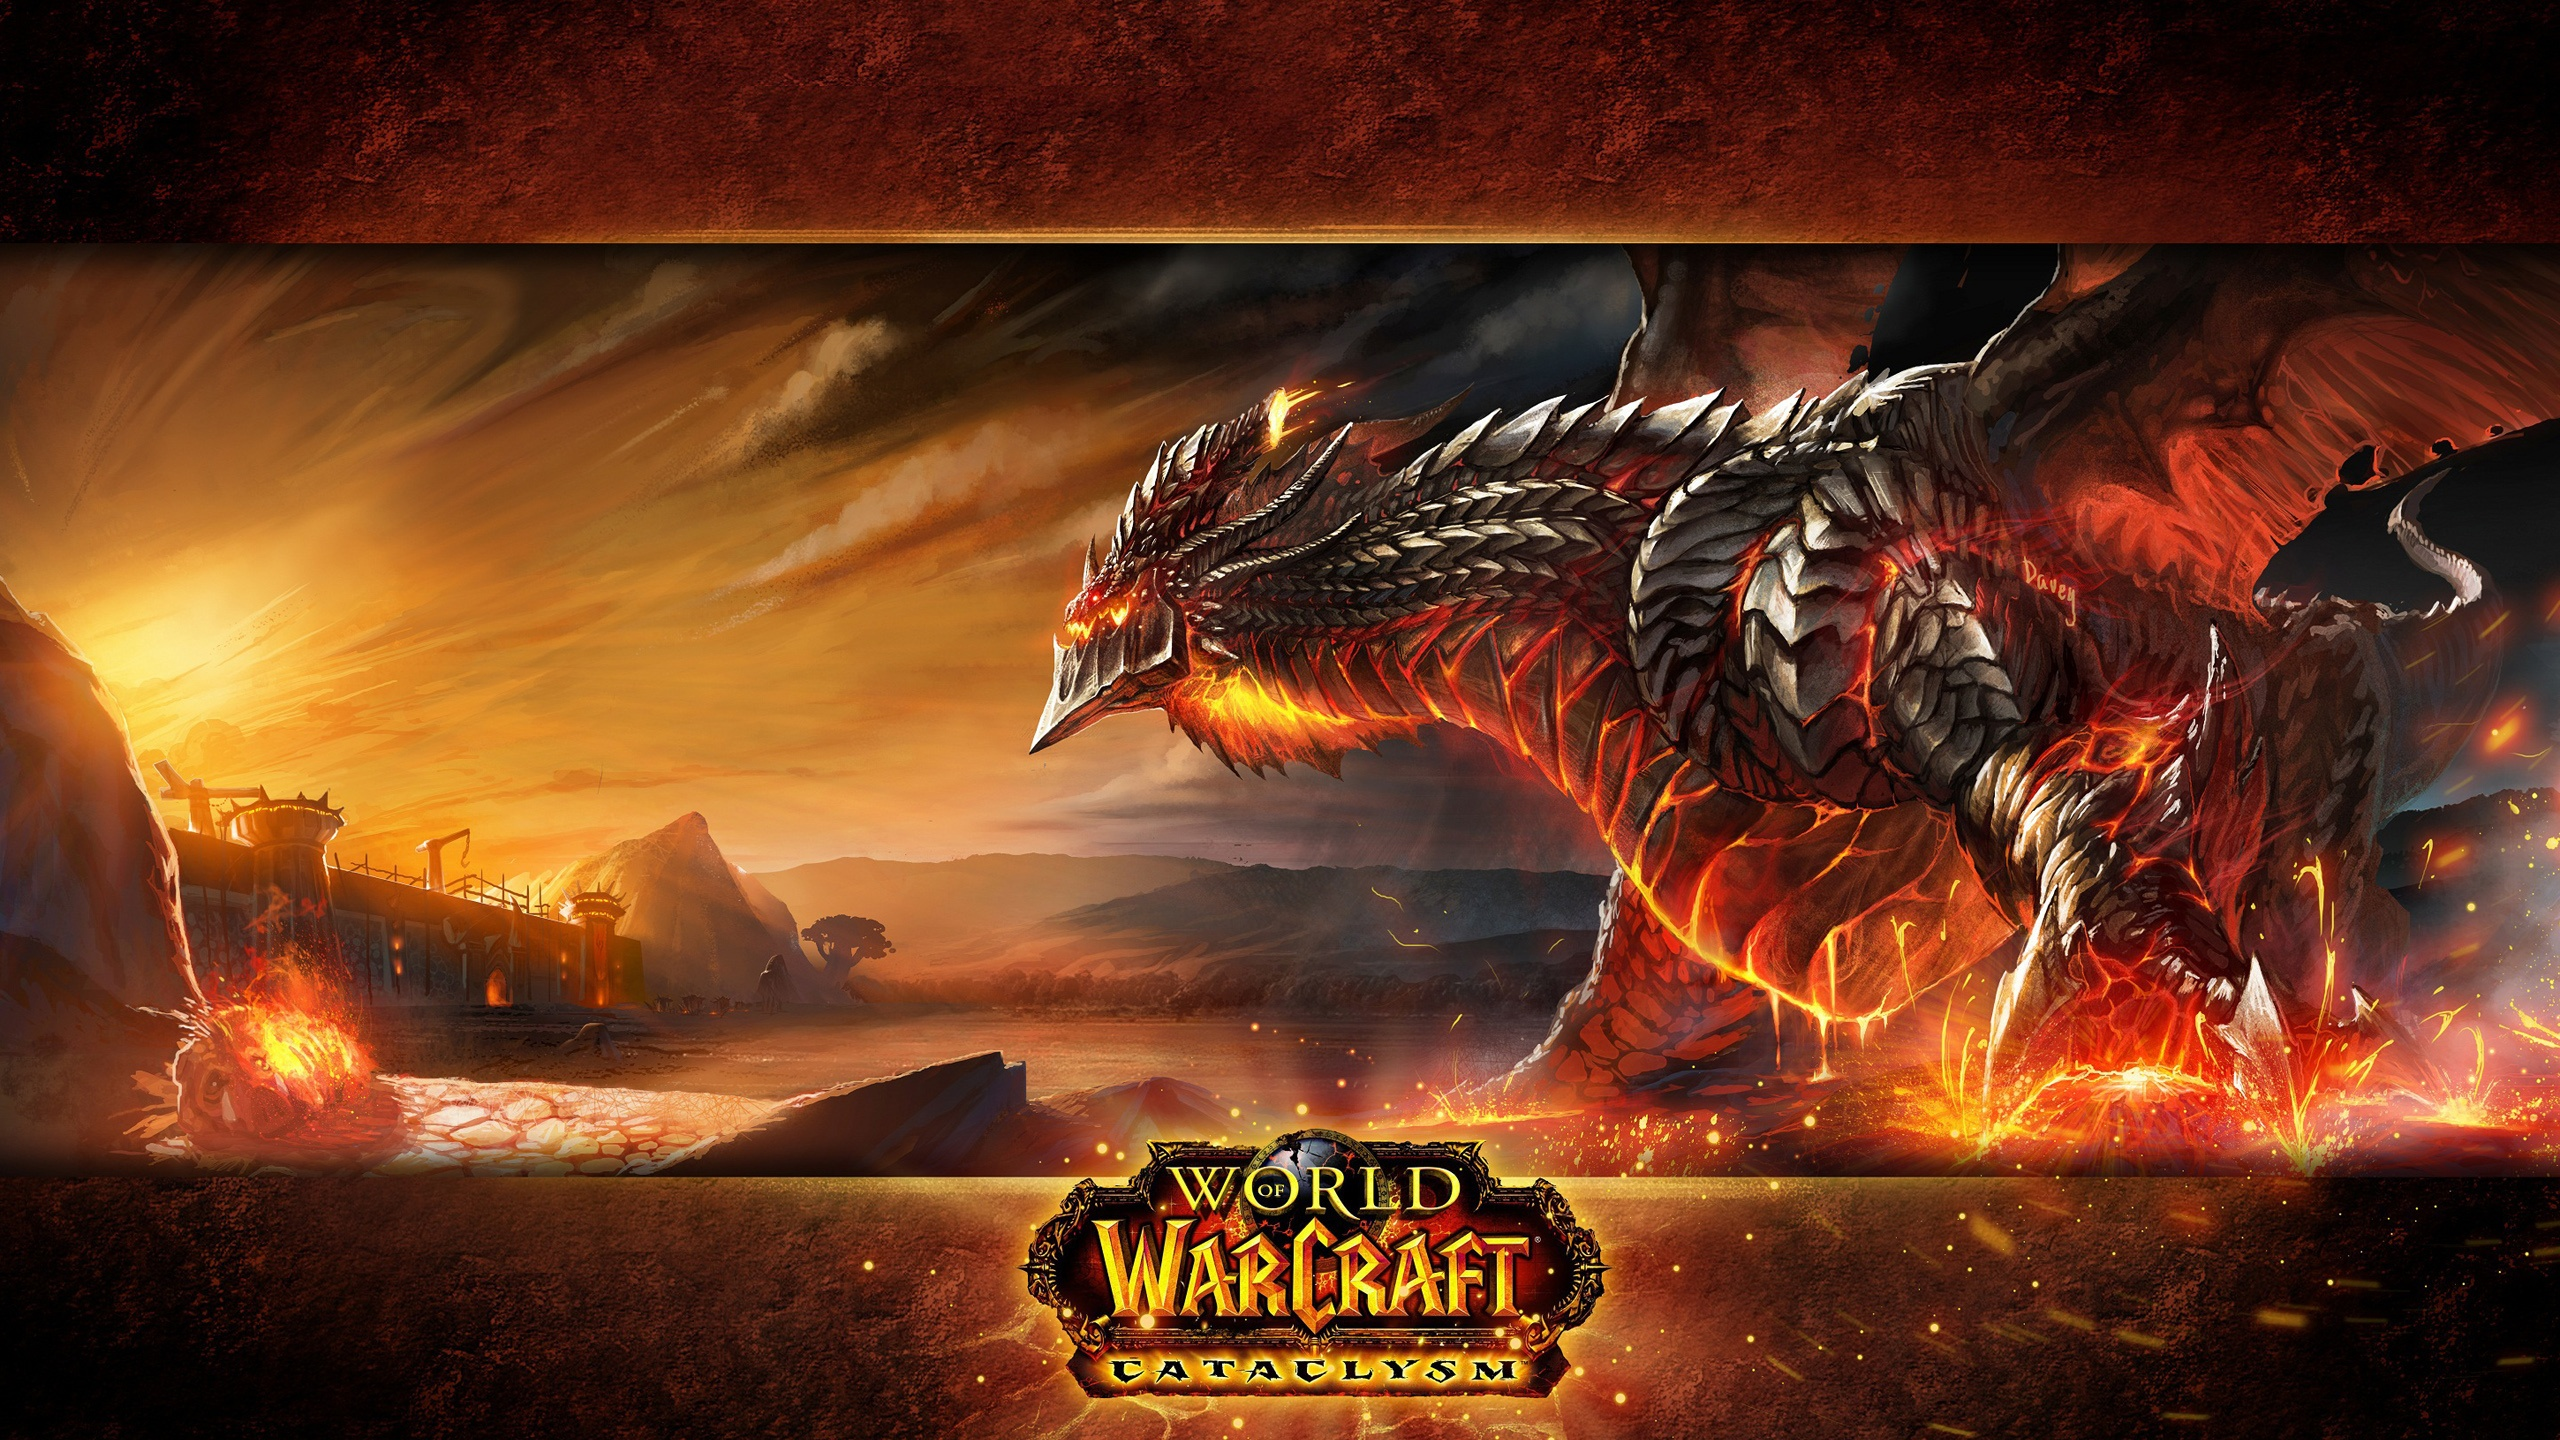 Wallpaper World Of Warcraft Hd 2560x1600 Hd Picture Image